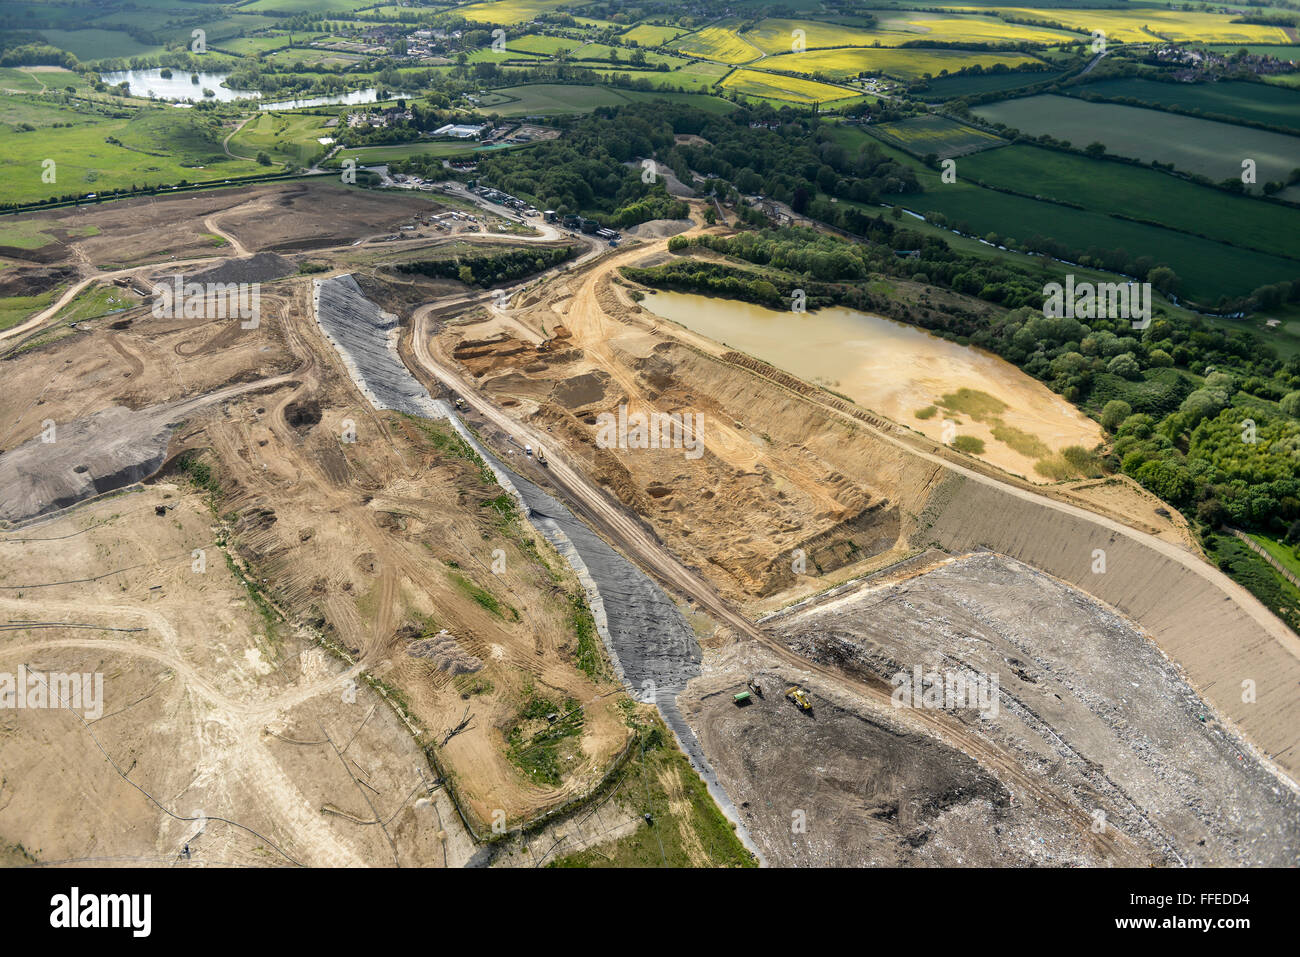 An aerial view of a landfill site in Hertfordshire, UK - Stock Image